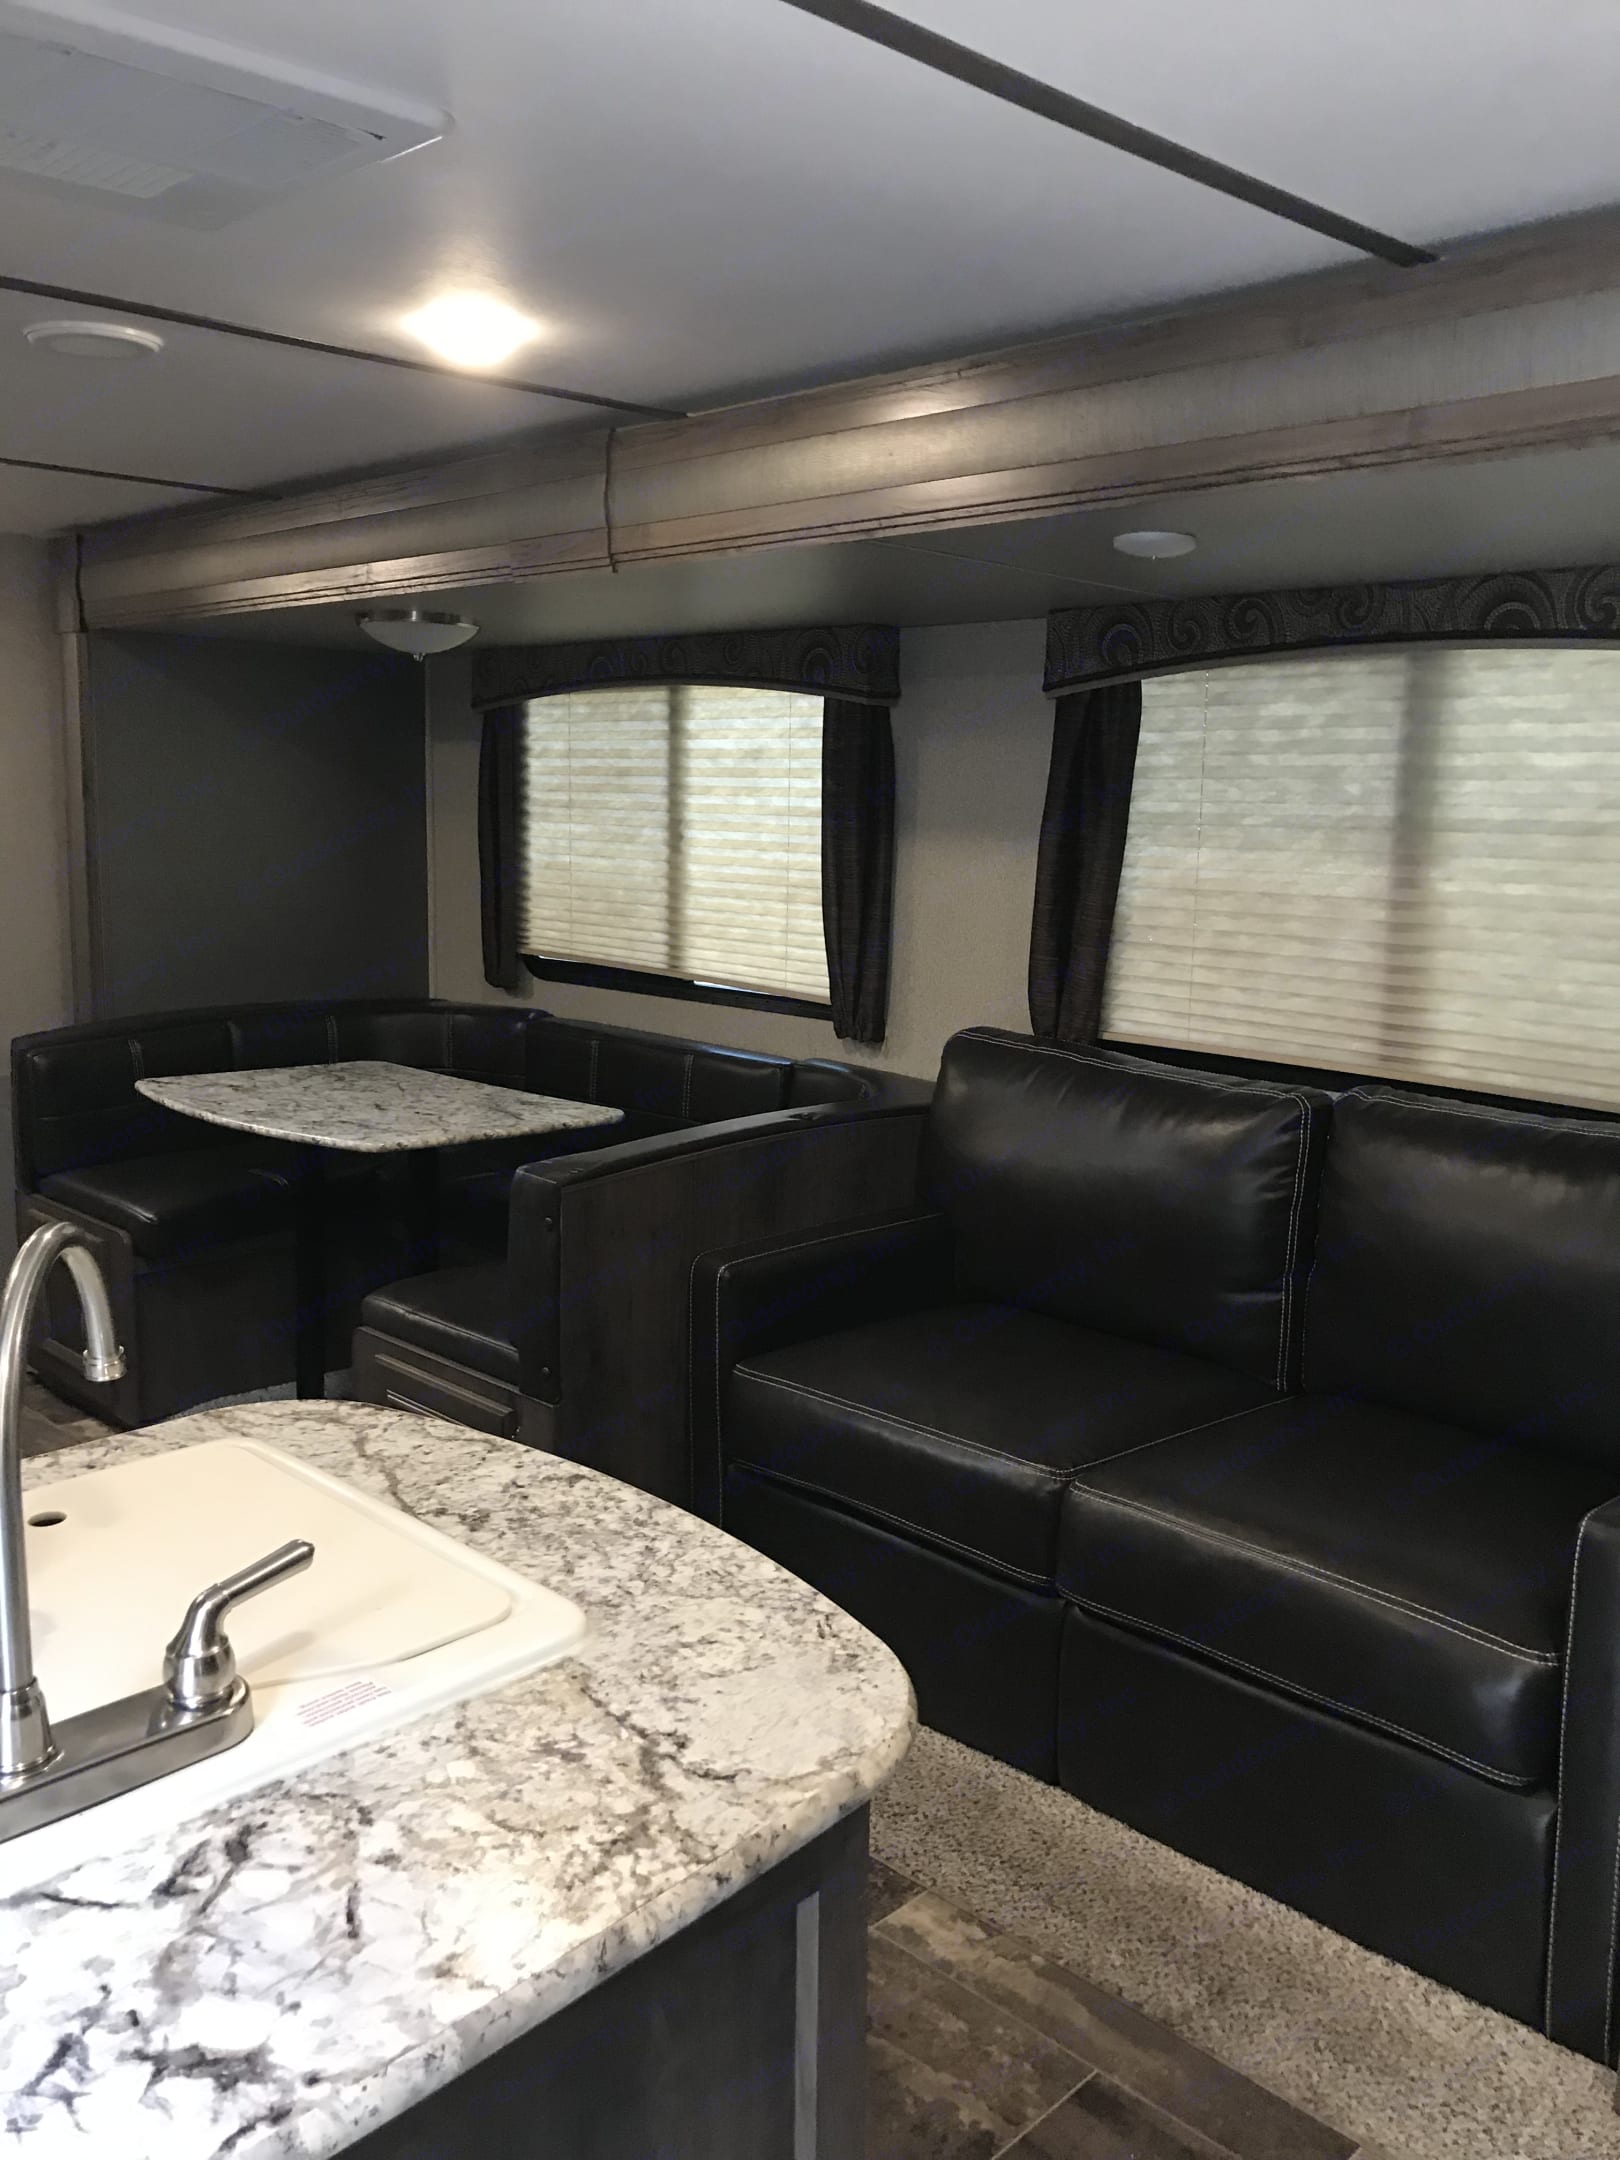 Couch folds out to bed for 2 and table folds down for 2. Keystone Passport 2019